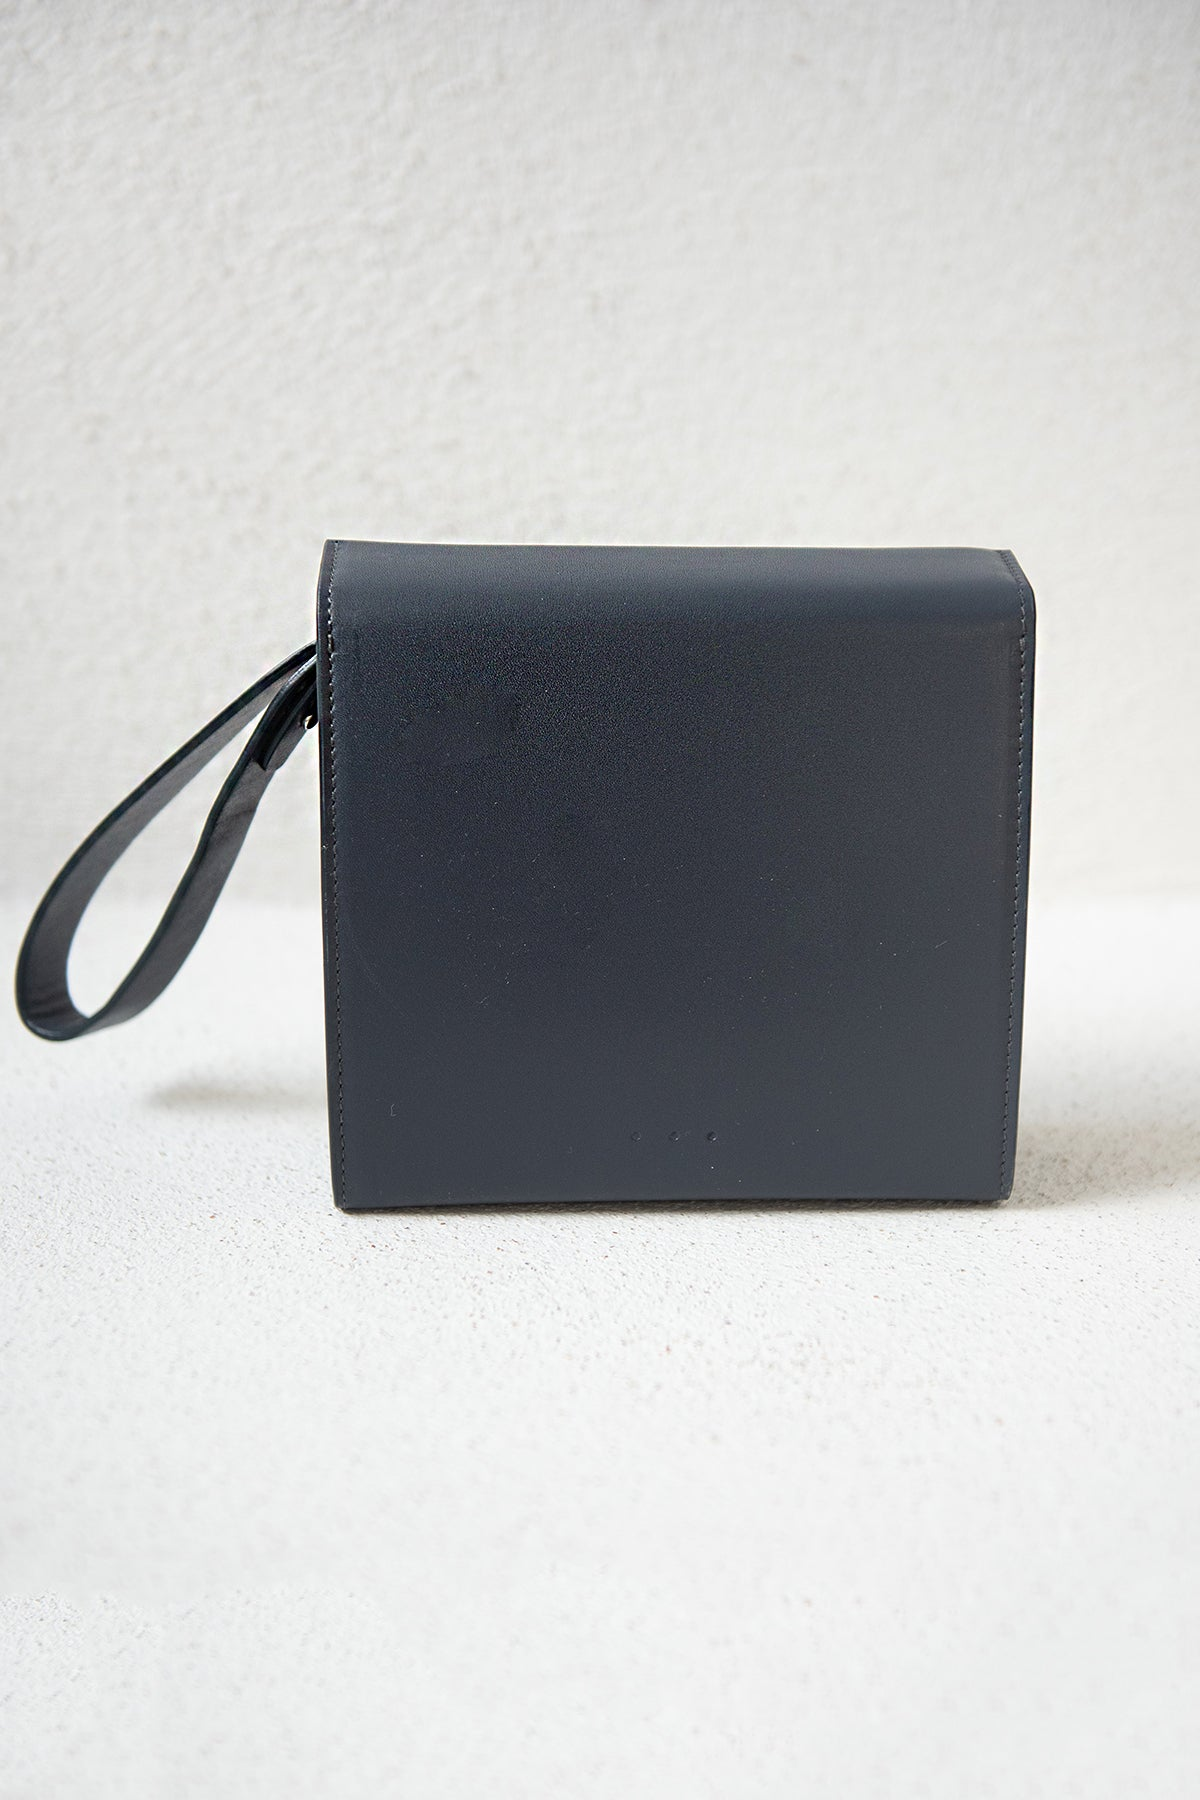 AESTHER EKME - pouch, shadow